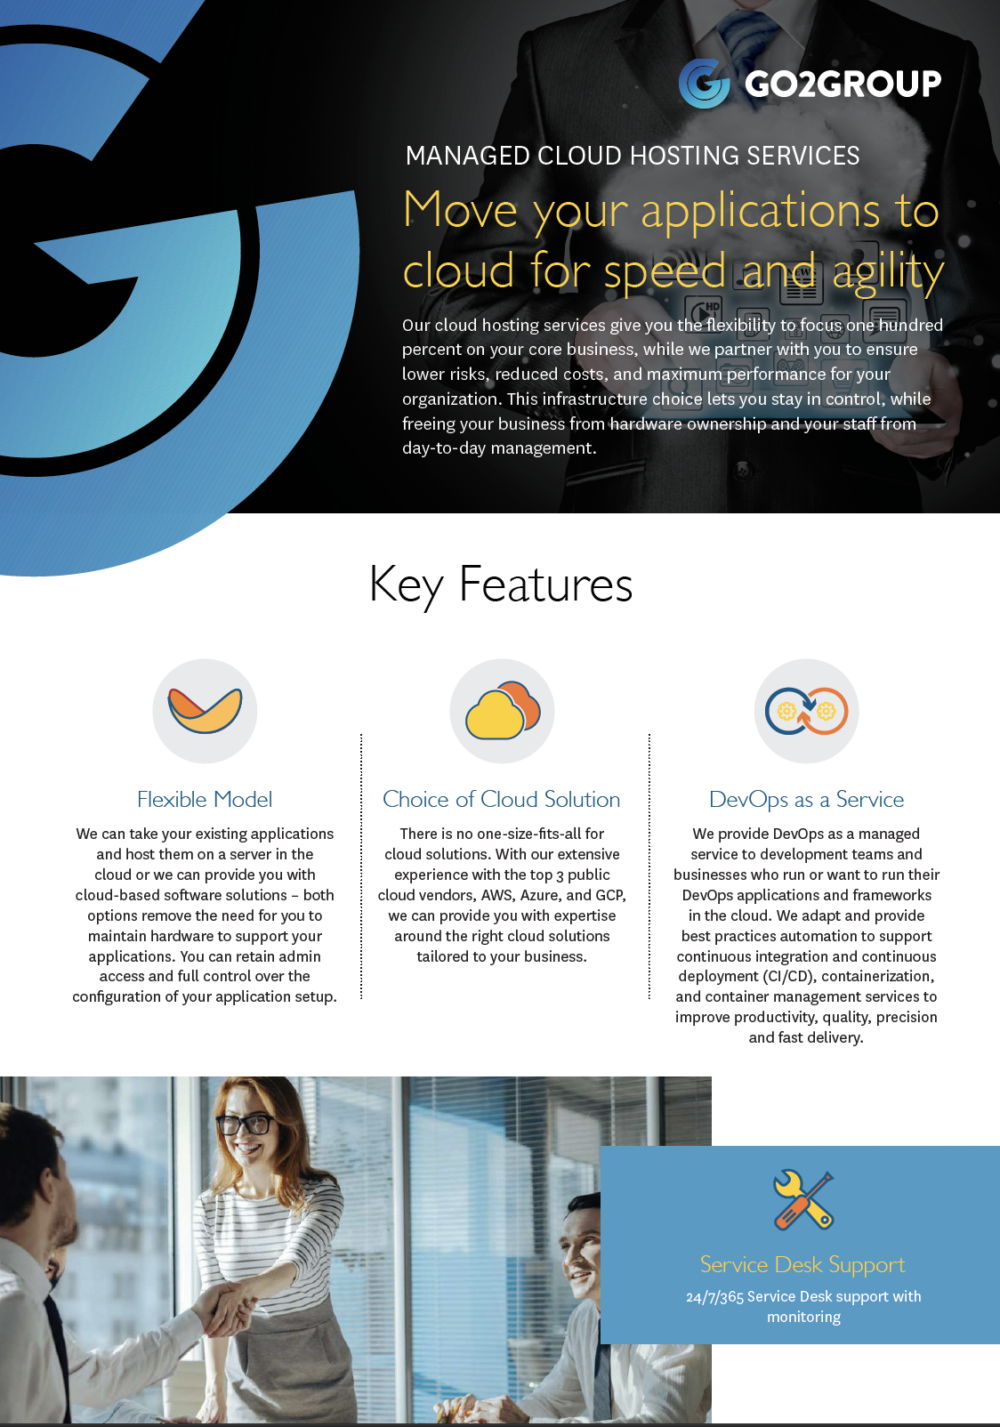 Go2Group Managed Cloud Hosting